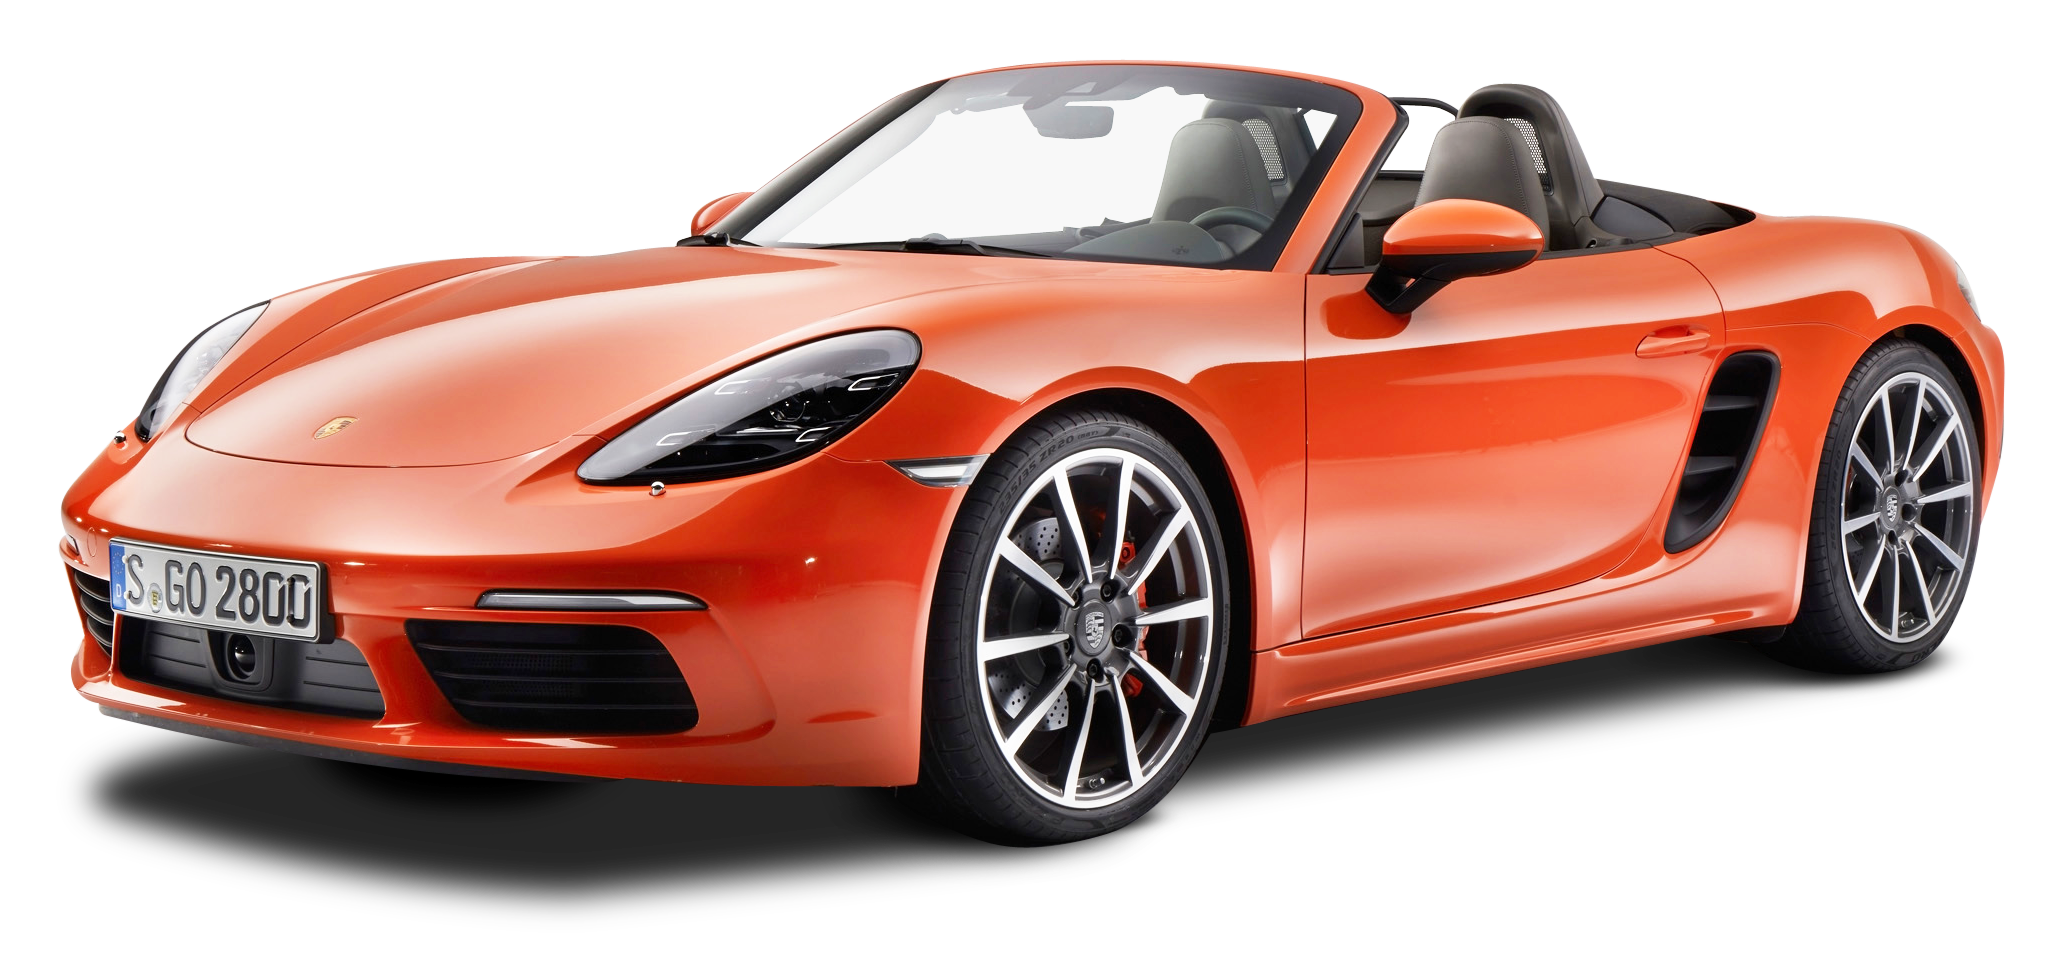 Porsche 718 Boxster S Orange Car PNG Image - Porsche HD PNG